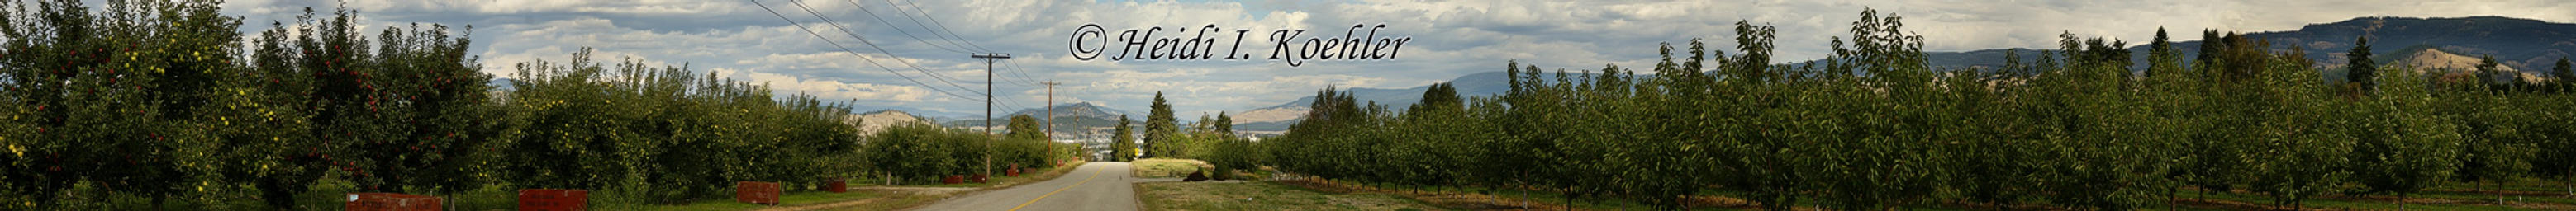 2014-09-08-s2-036-KLO-ORCHARD-PANO-web by 12monthsOFwinter